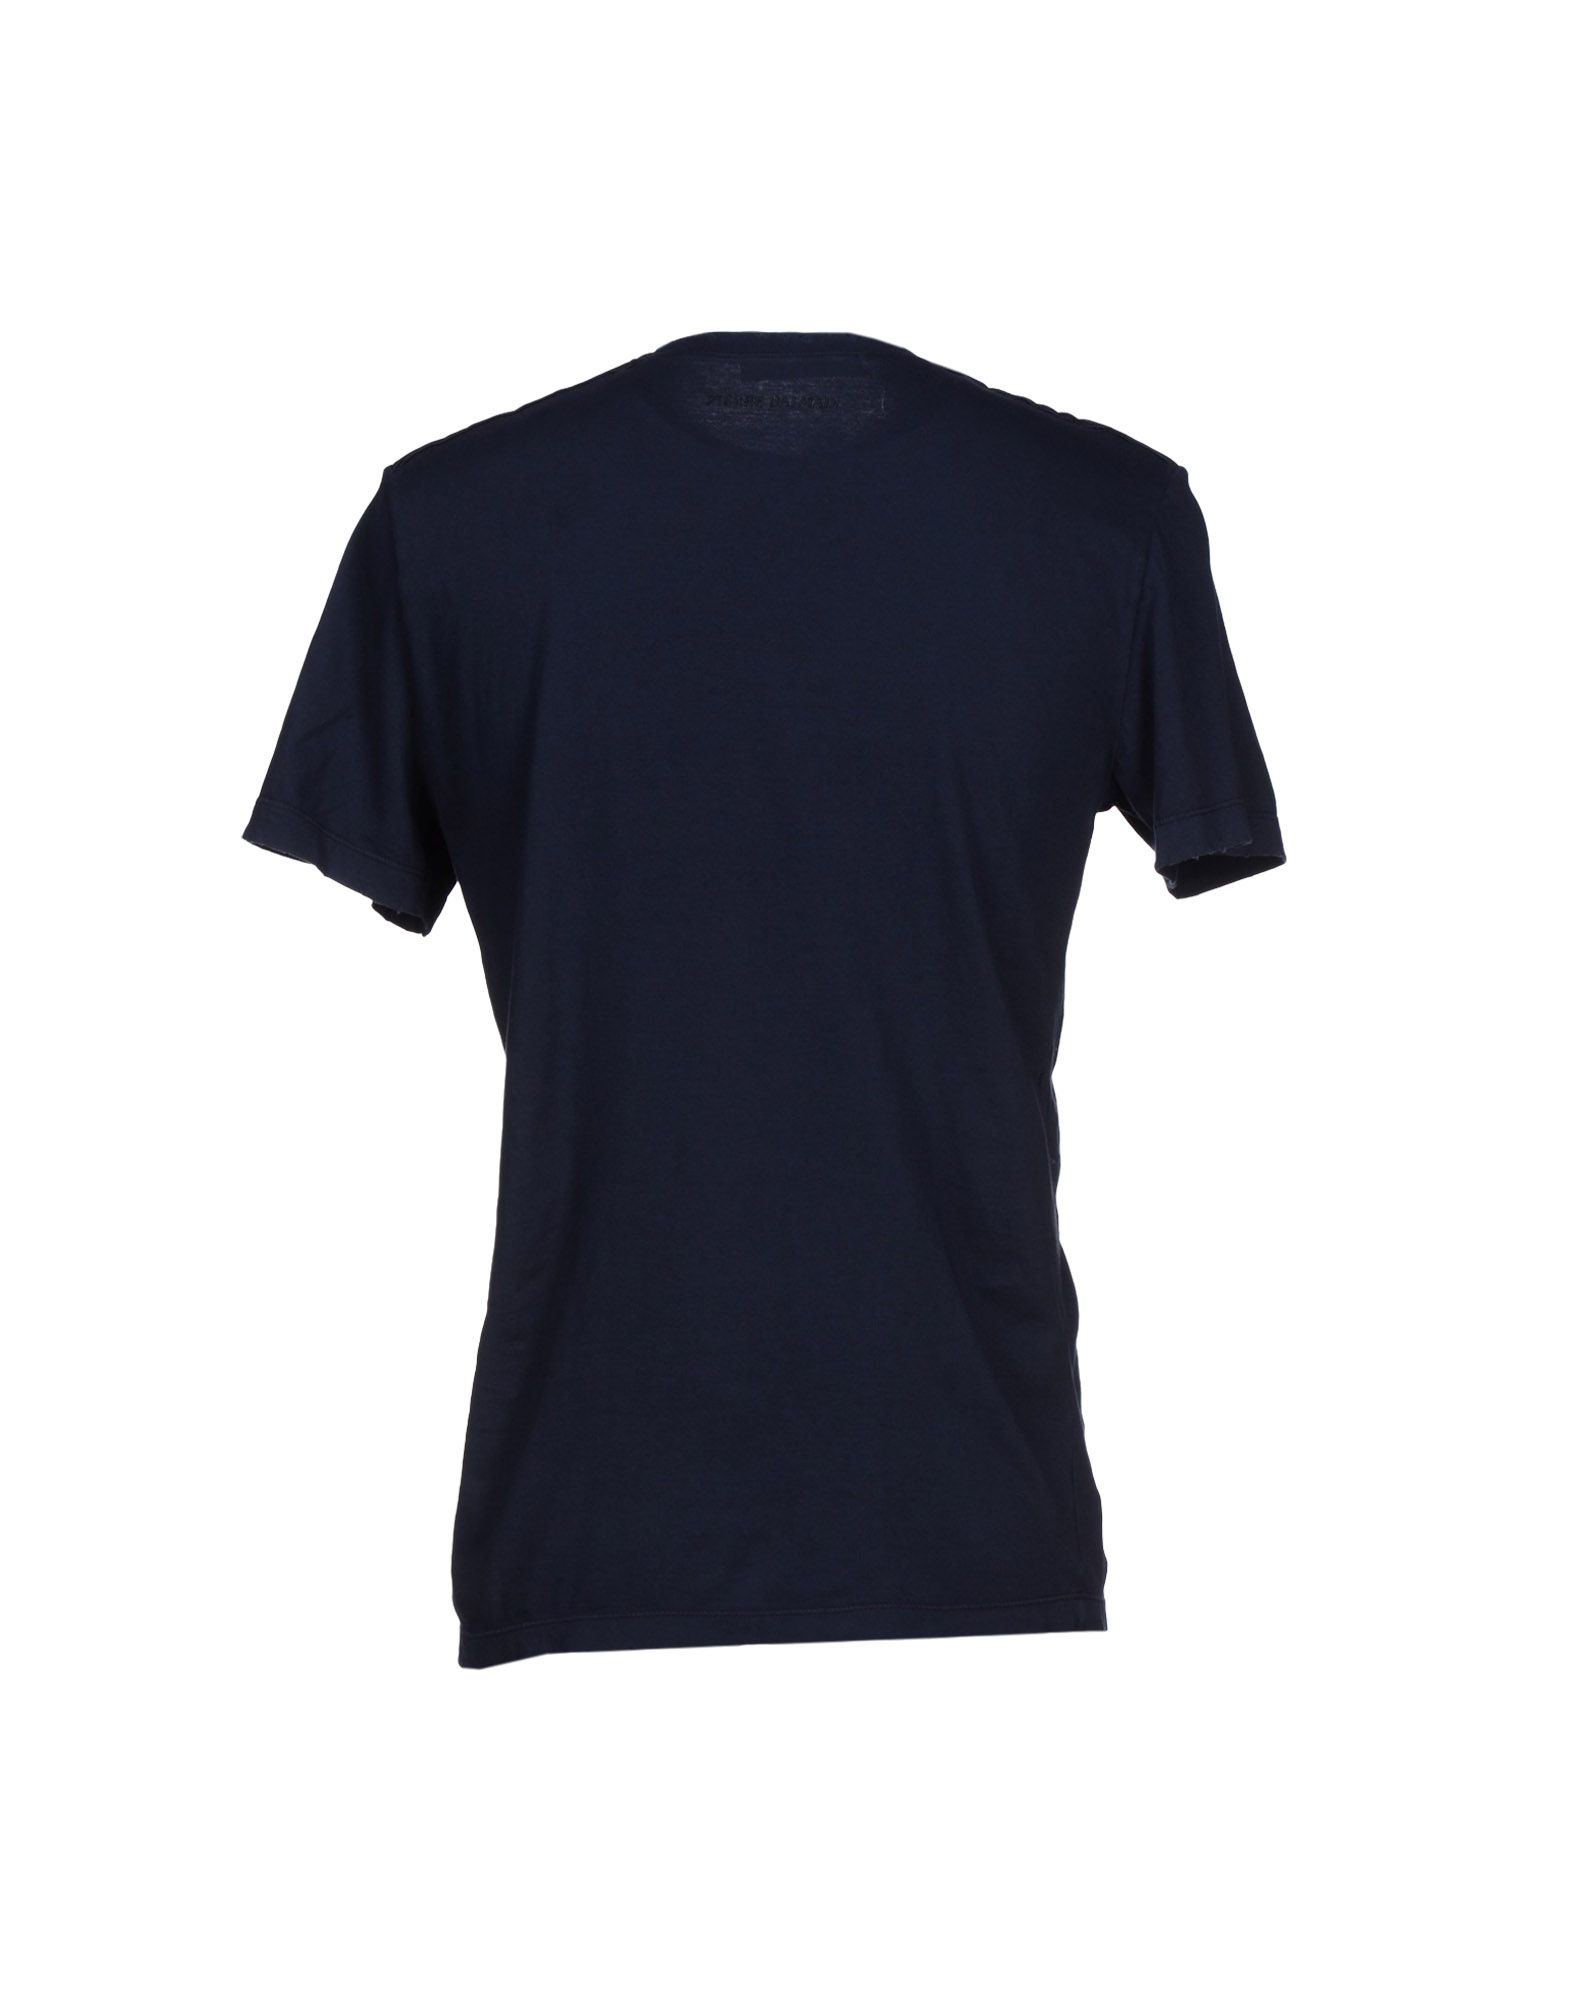 balmain t shirt in blue for men dark blue lyst. Black Bedroom Furniture Sets. Home Design Ideas